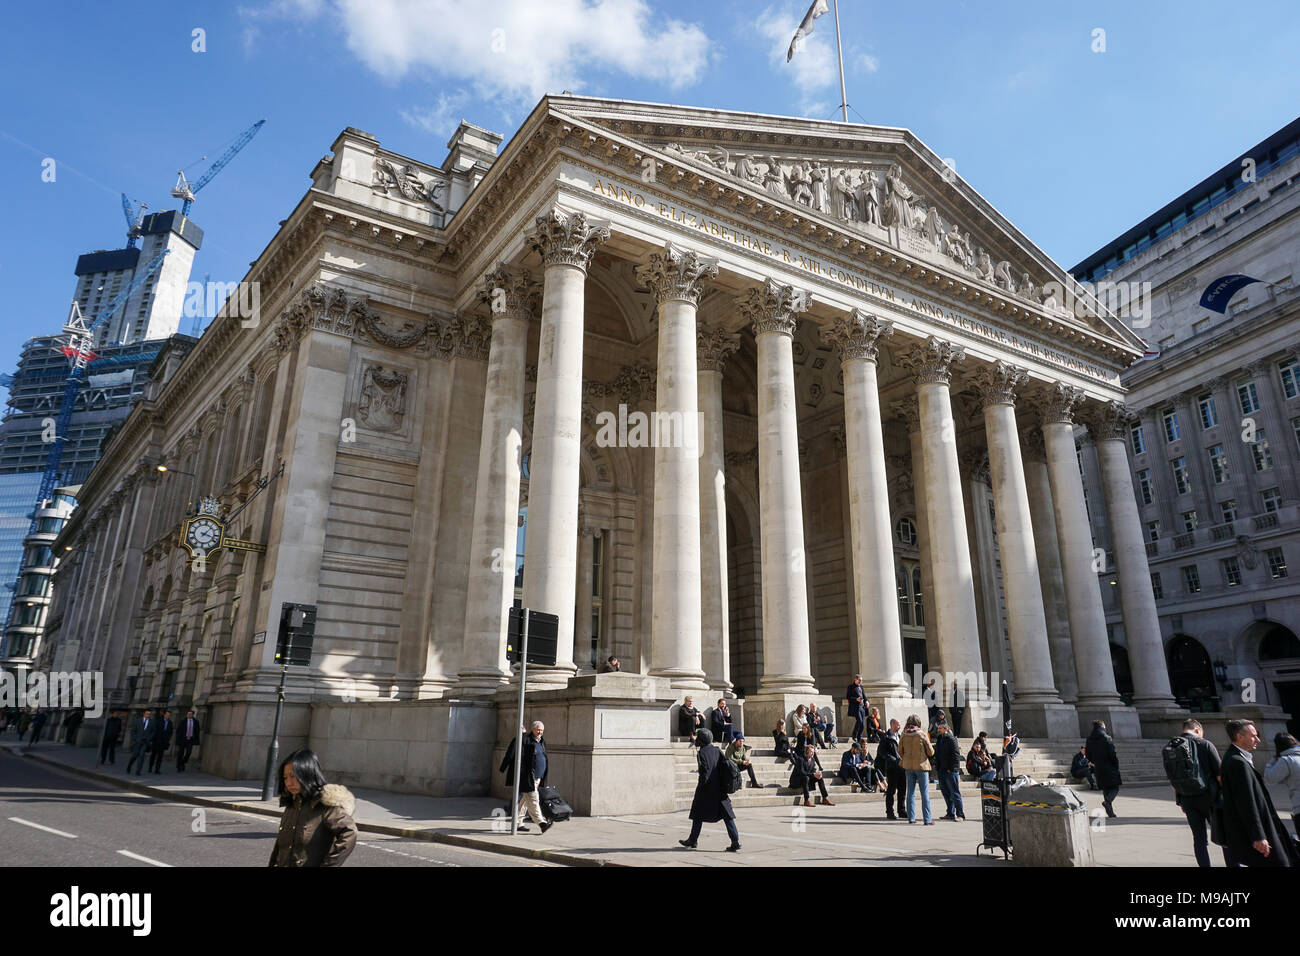 Front of the Royal Exchange in London, UK - Stock Image